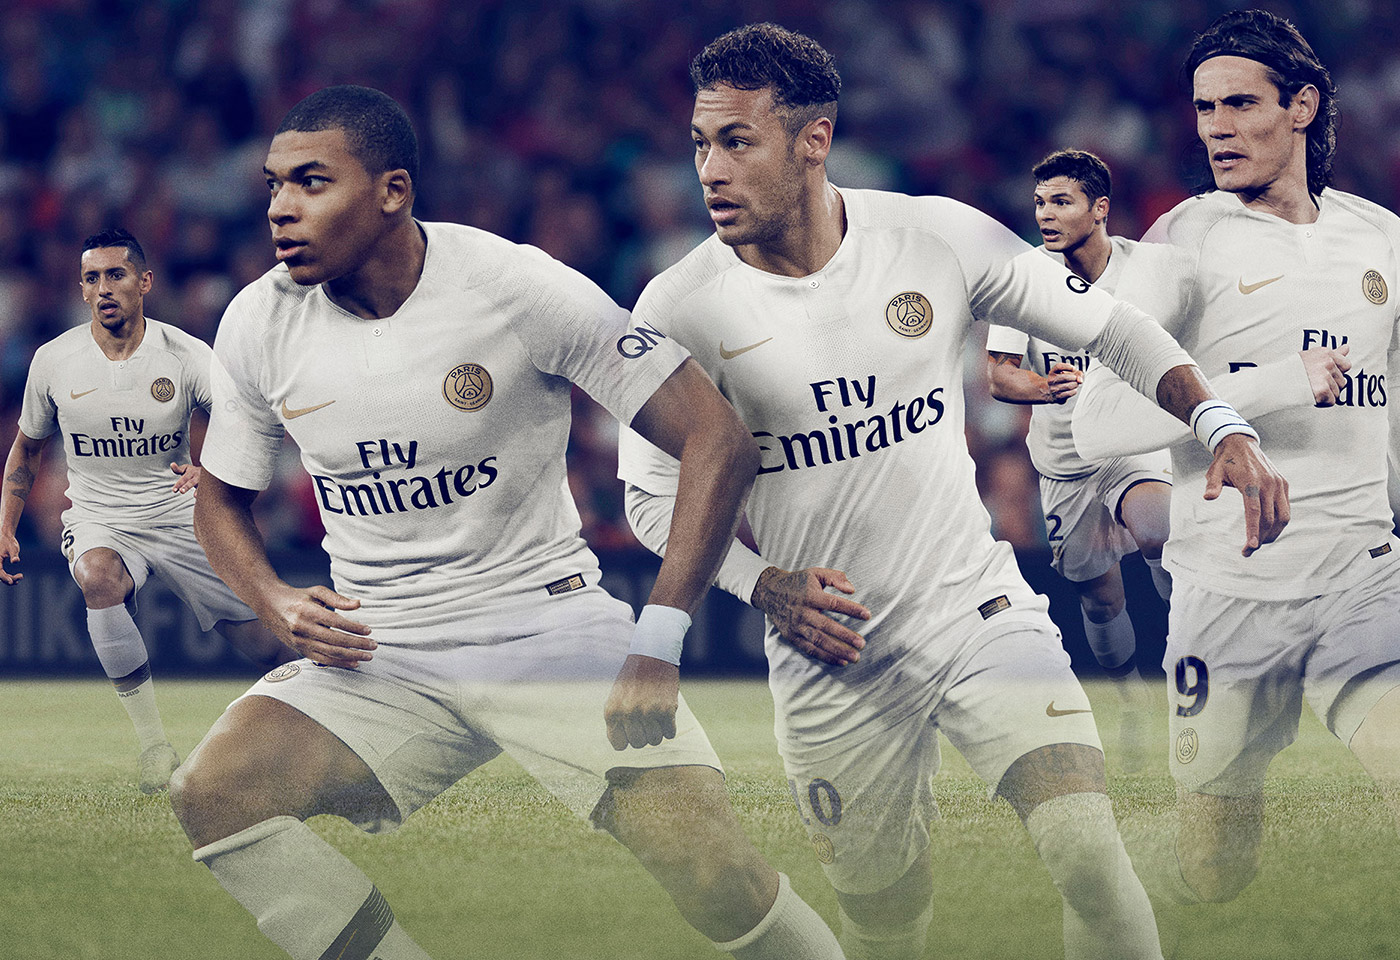 PSG_2018-19_SUFA18_FB_CKC_PSG_Away_Group_HFR4_80810